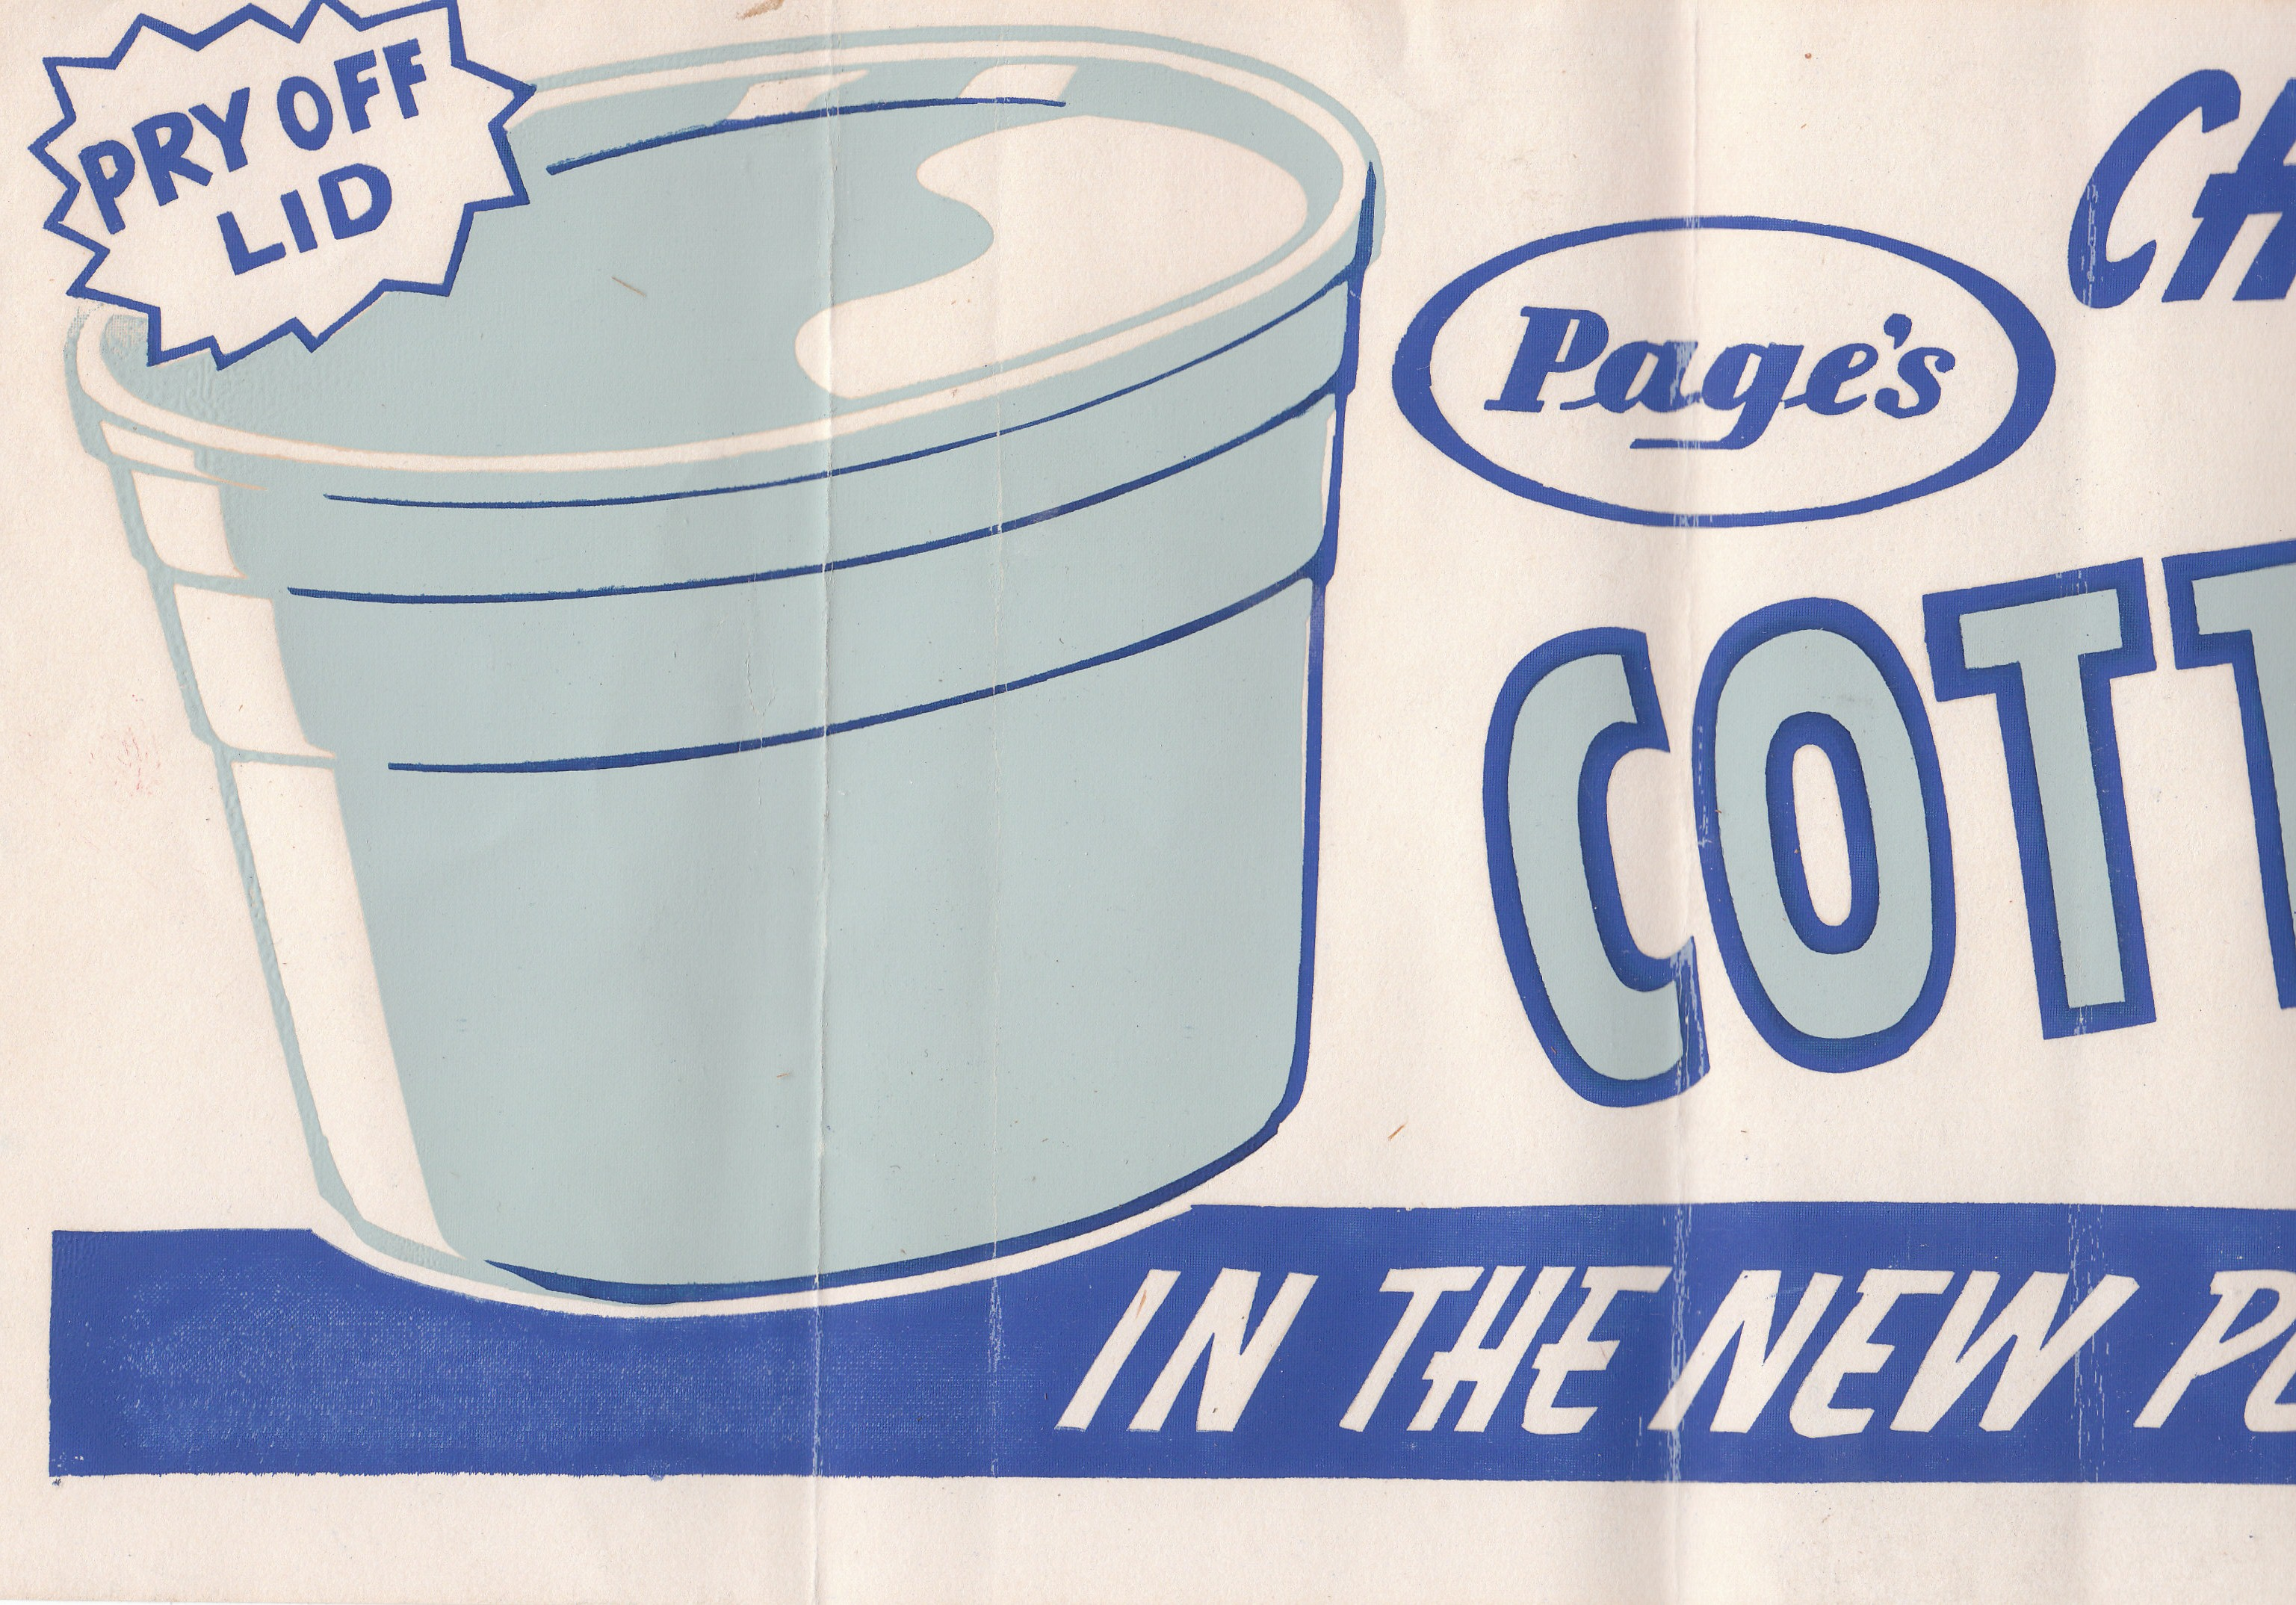 Page Dairy Cottage Cheese Advertisement (2)